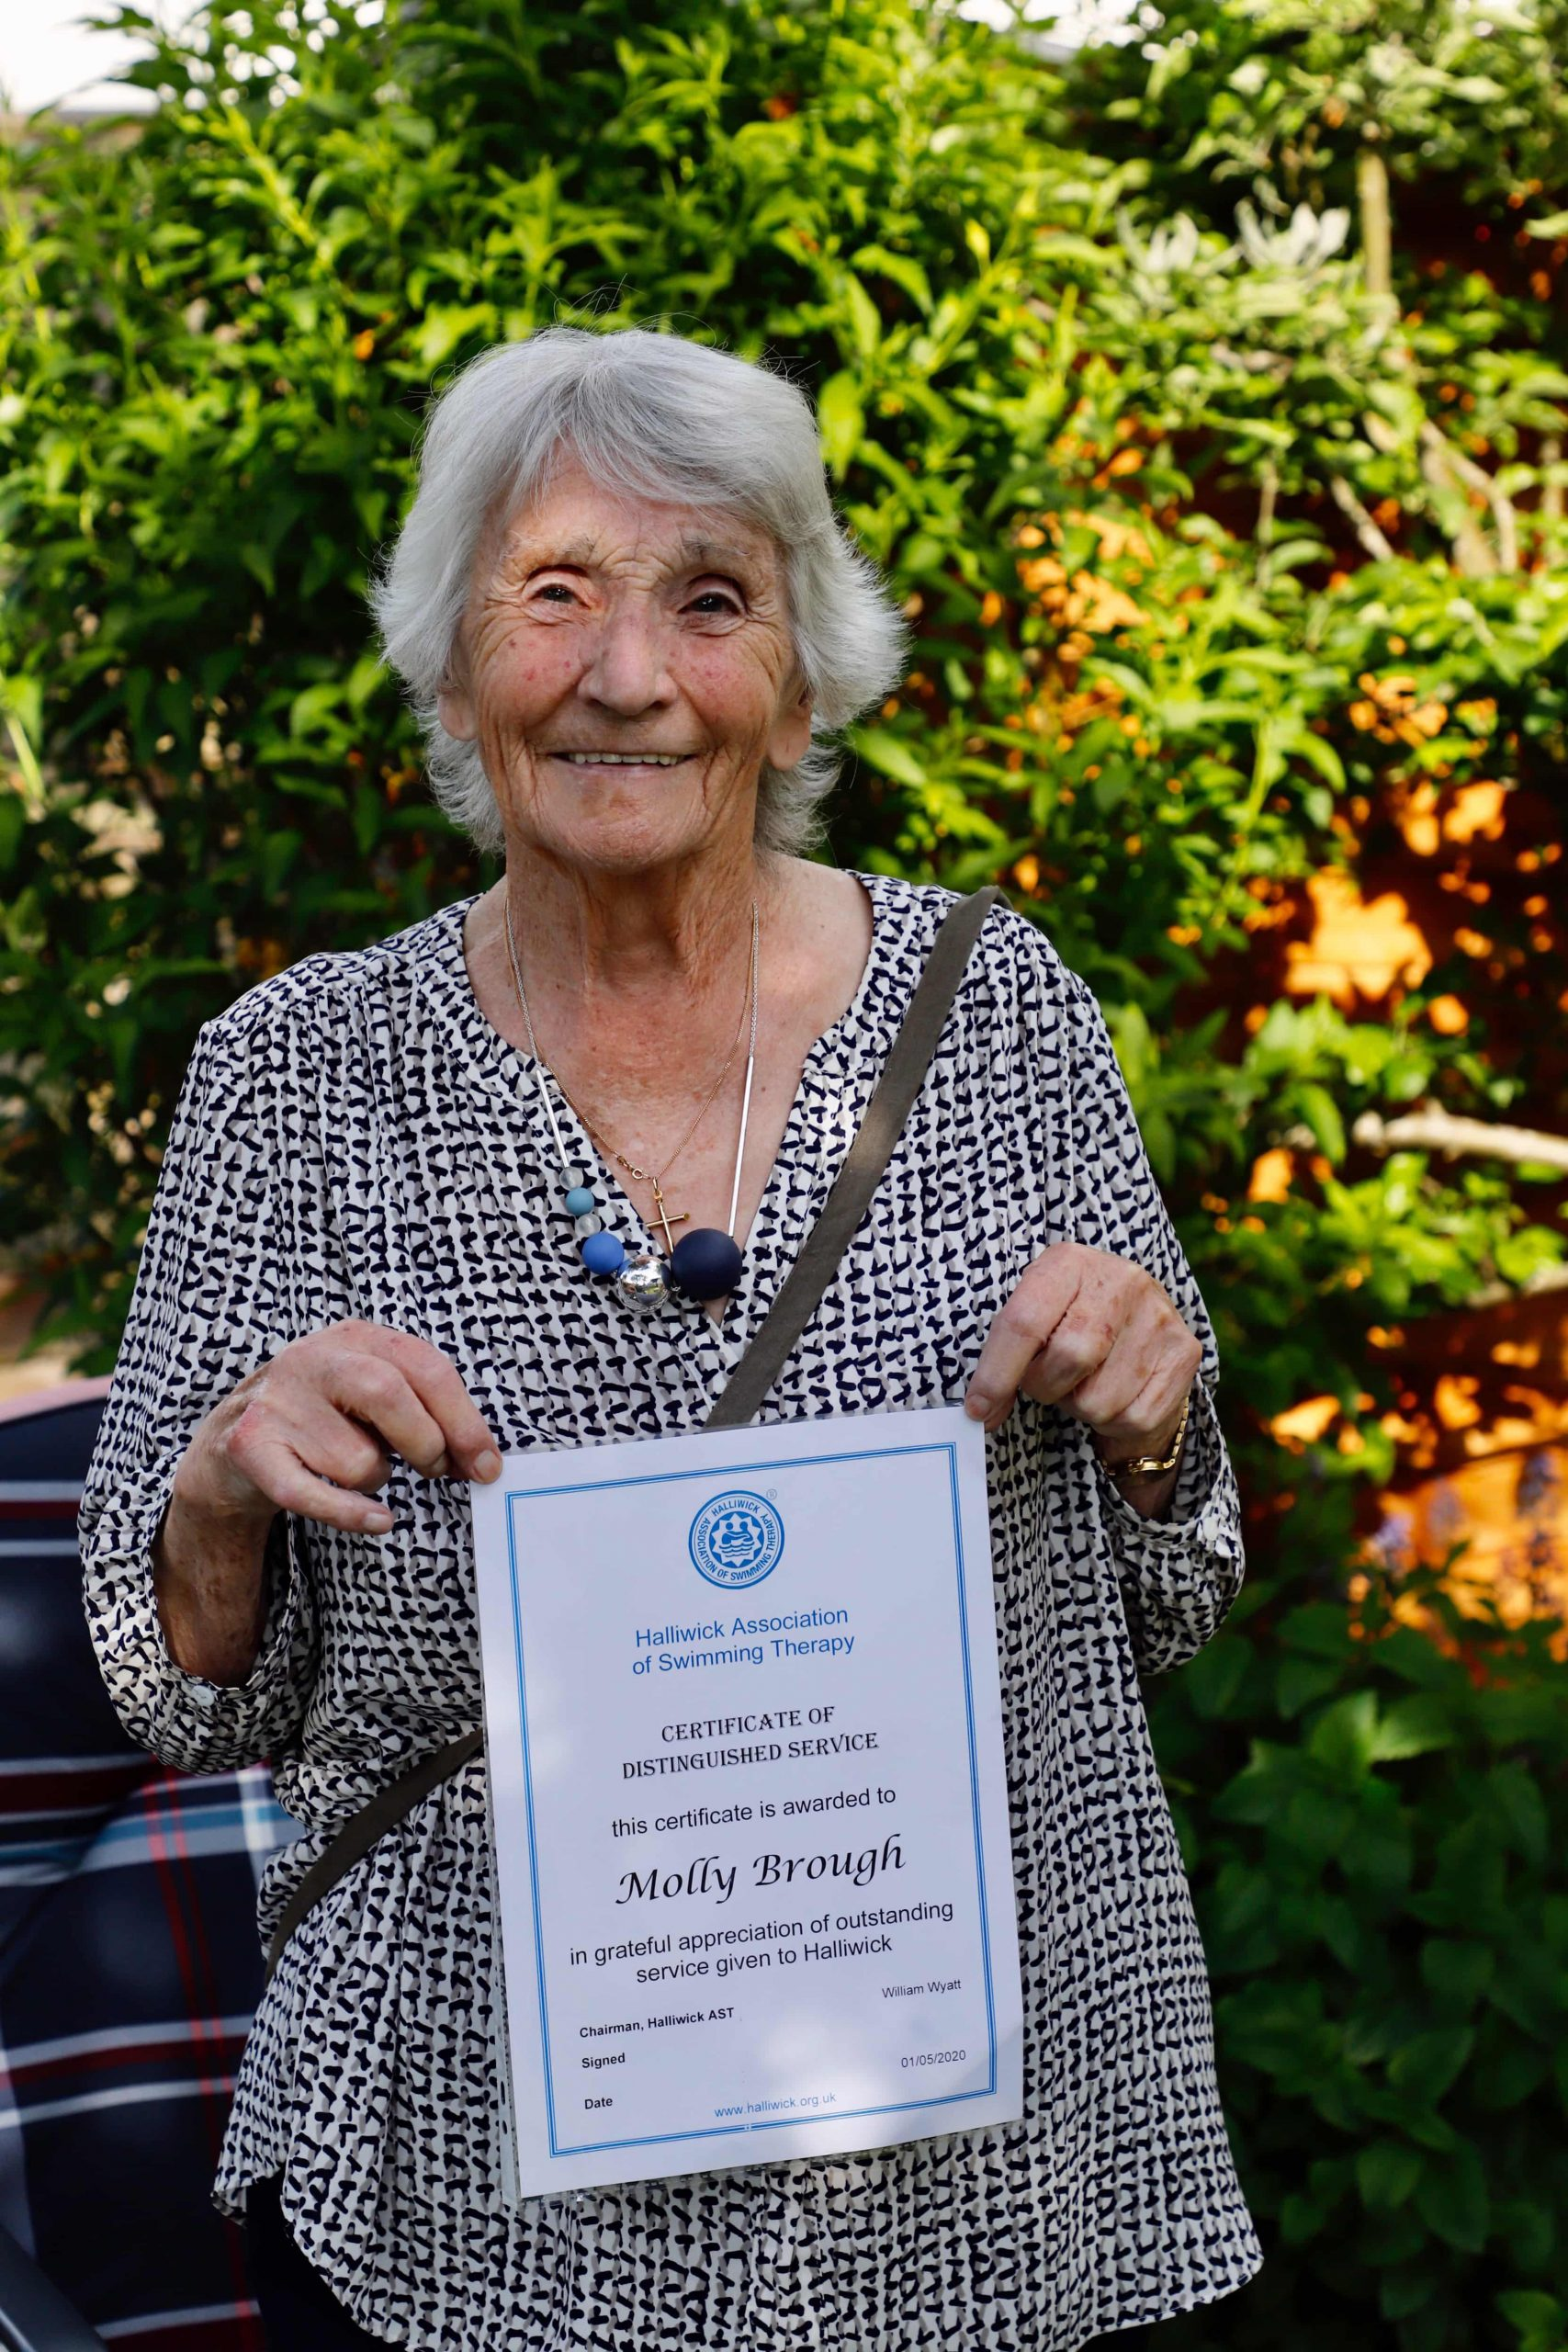 Molly Brough with Certificate